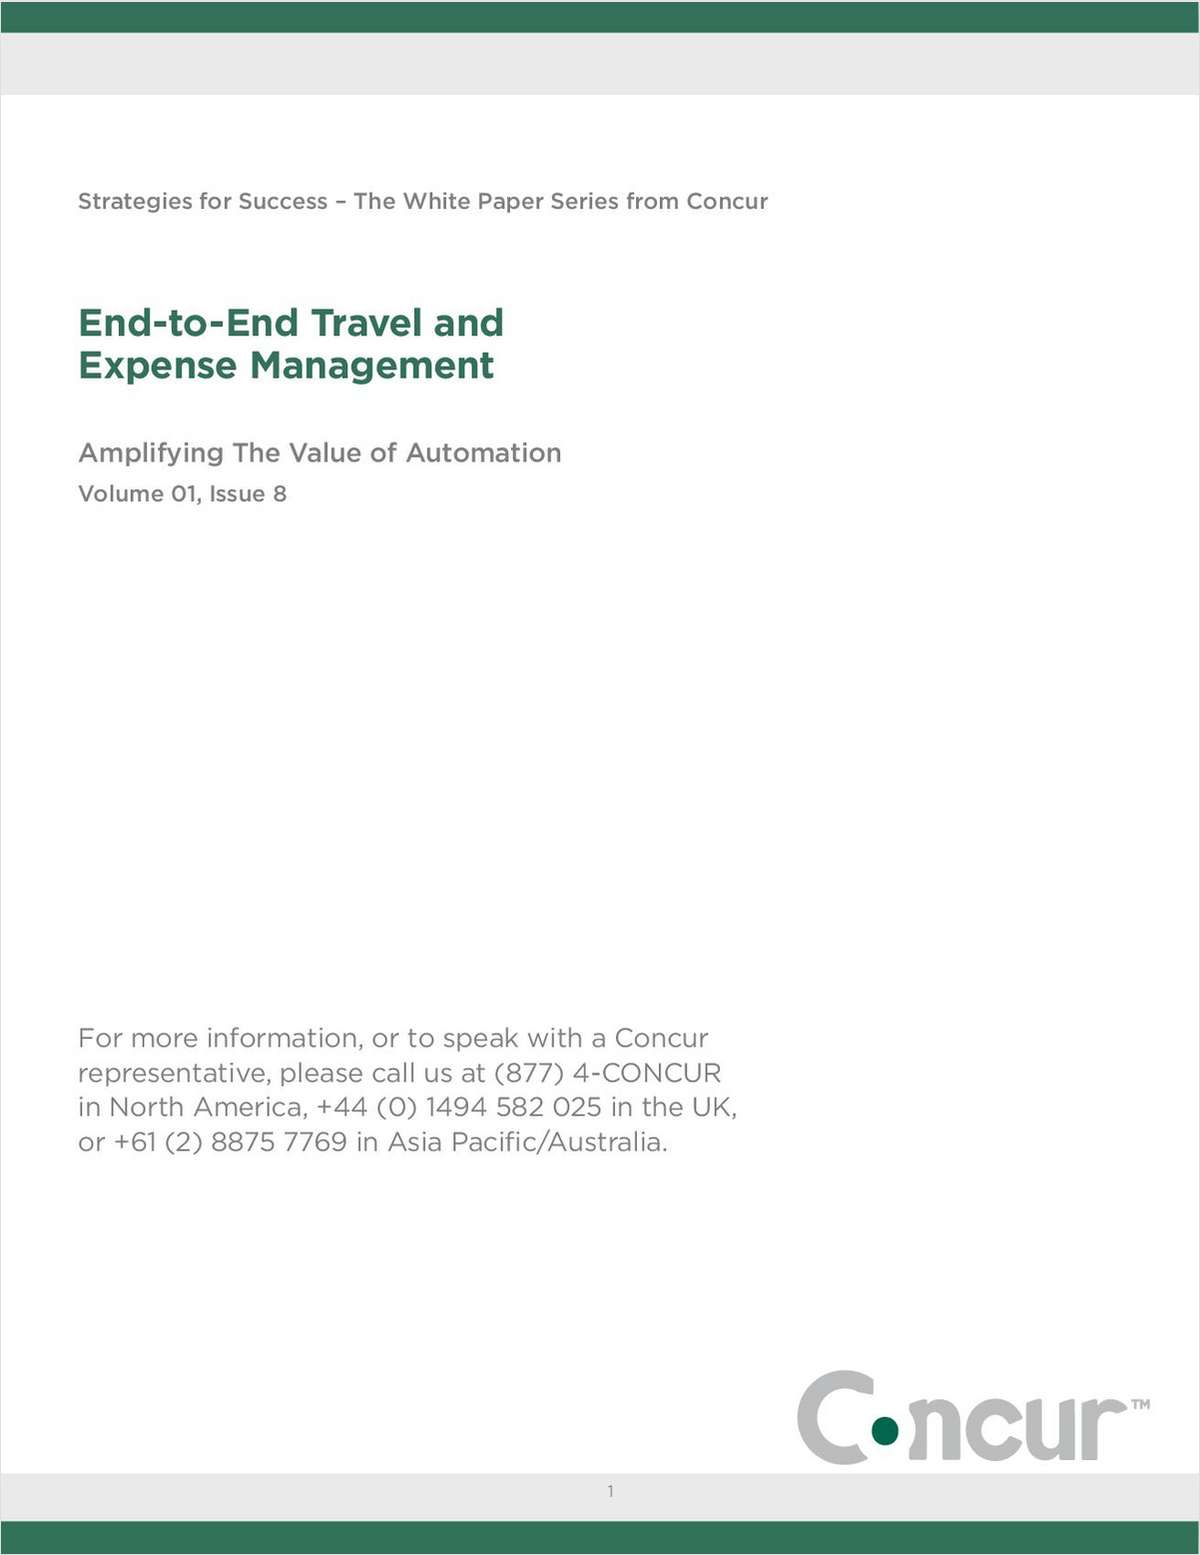 Amplifying the Value of Travel & Expense Automation